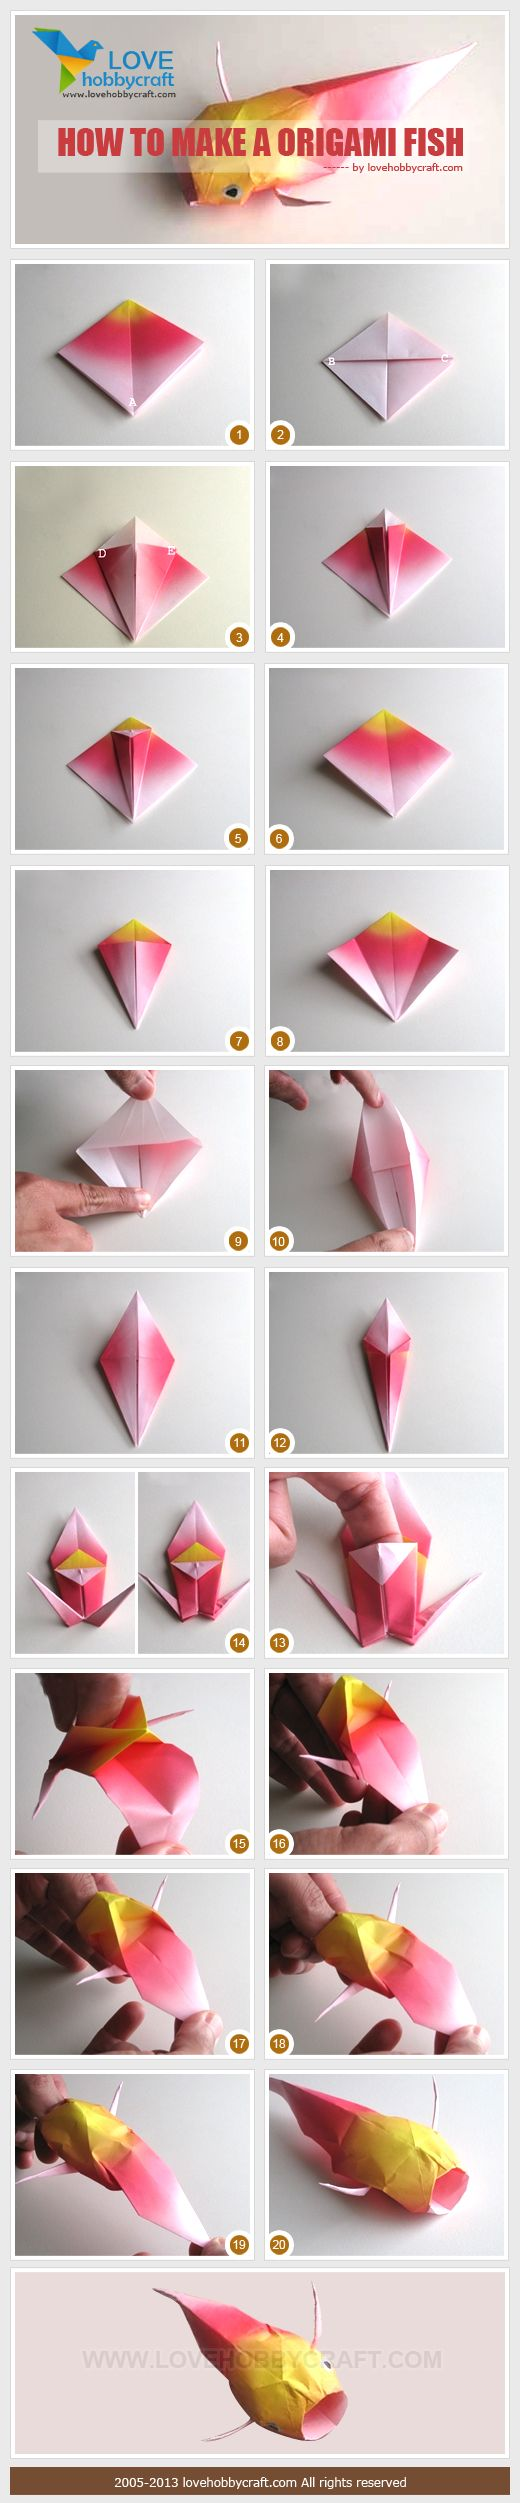 origami fish instructions.